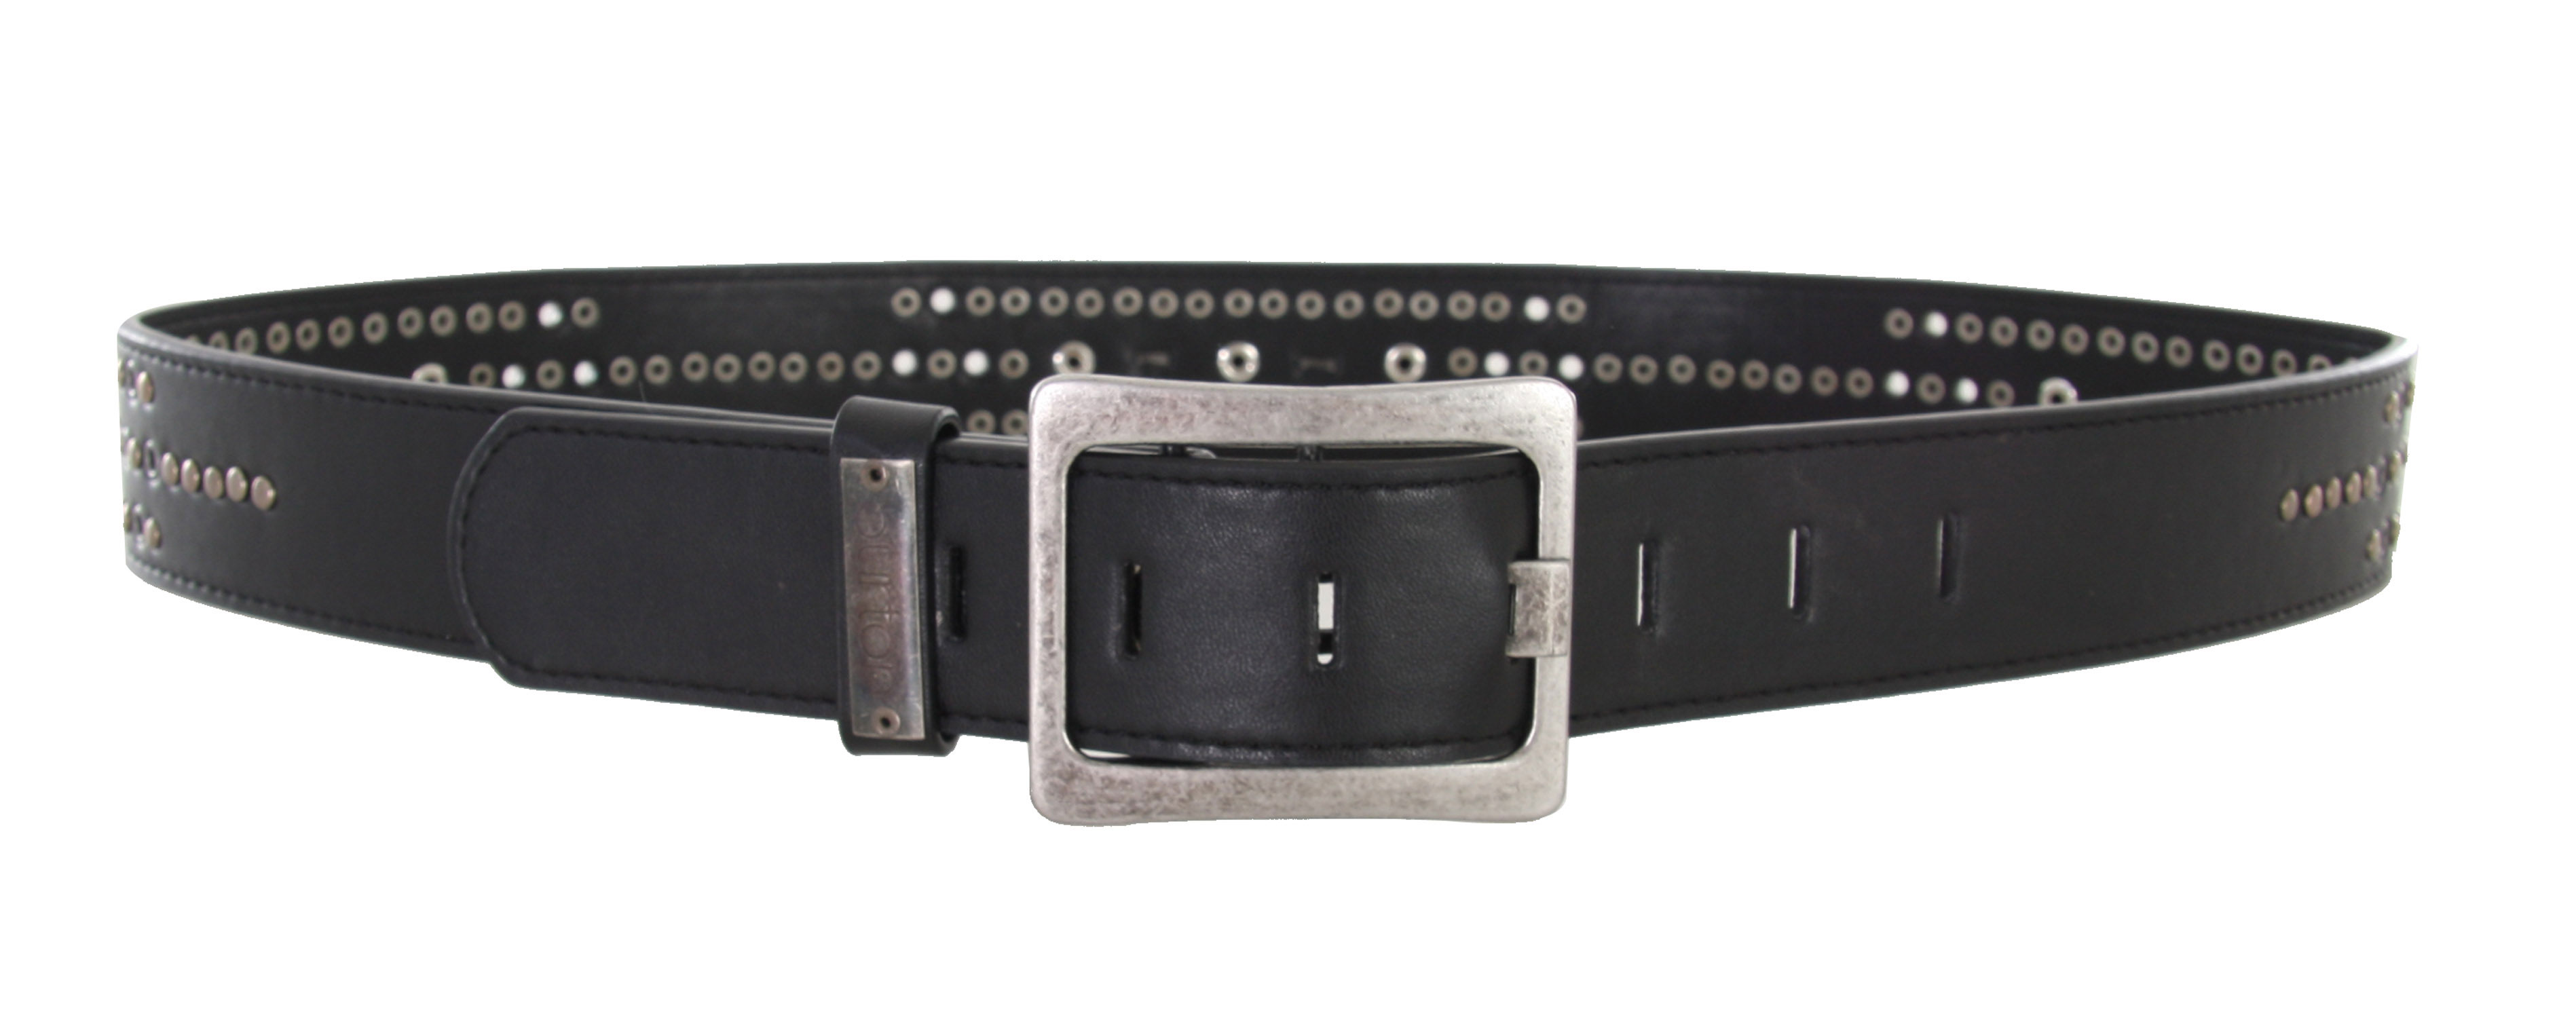 Snowboard Get your rocker style on with this Burton Studded Belt. This hot accessory features PU Leather Studded Belt with Full Rivet Backing, and Debossed Burton Roll Charms on the Buckle. The studs on the belt will be a testament to your edgy fashion choice, and function to hold up those pants at the same time! Don't be a bore with that same old brown leather belt, kick up those pants with the Burton Studded Belt and be a statement in your own right.Key Features of the Burton Studded Belt: PU Leather Grommet Belt PU Leather Inlay Buckle with Custom Logo Grommets and Studs - $16.77